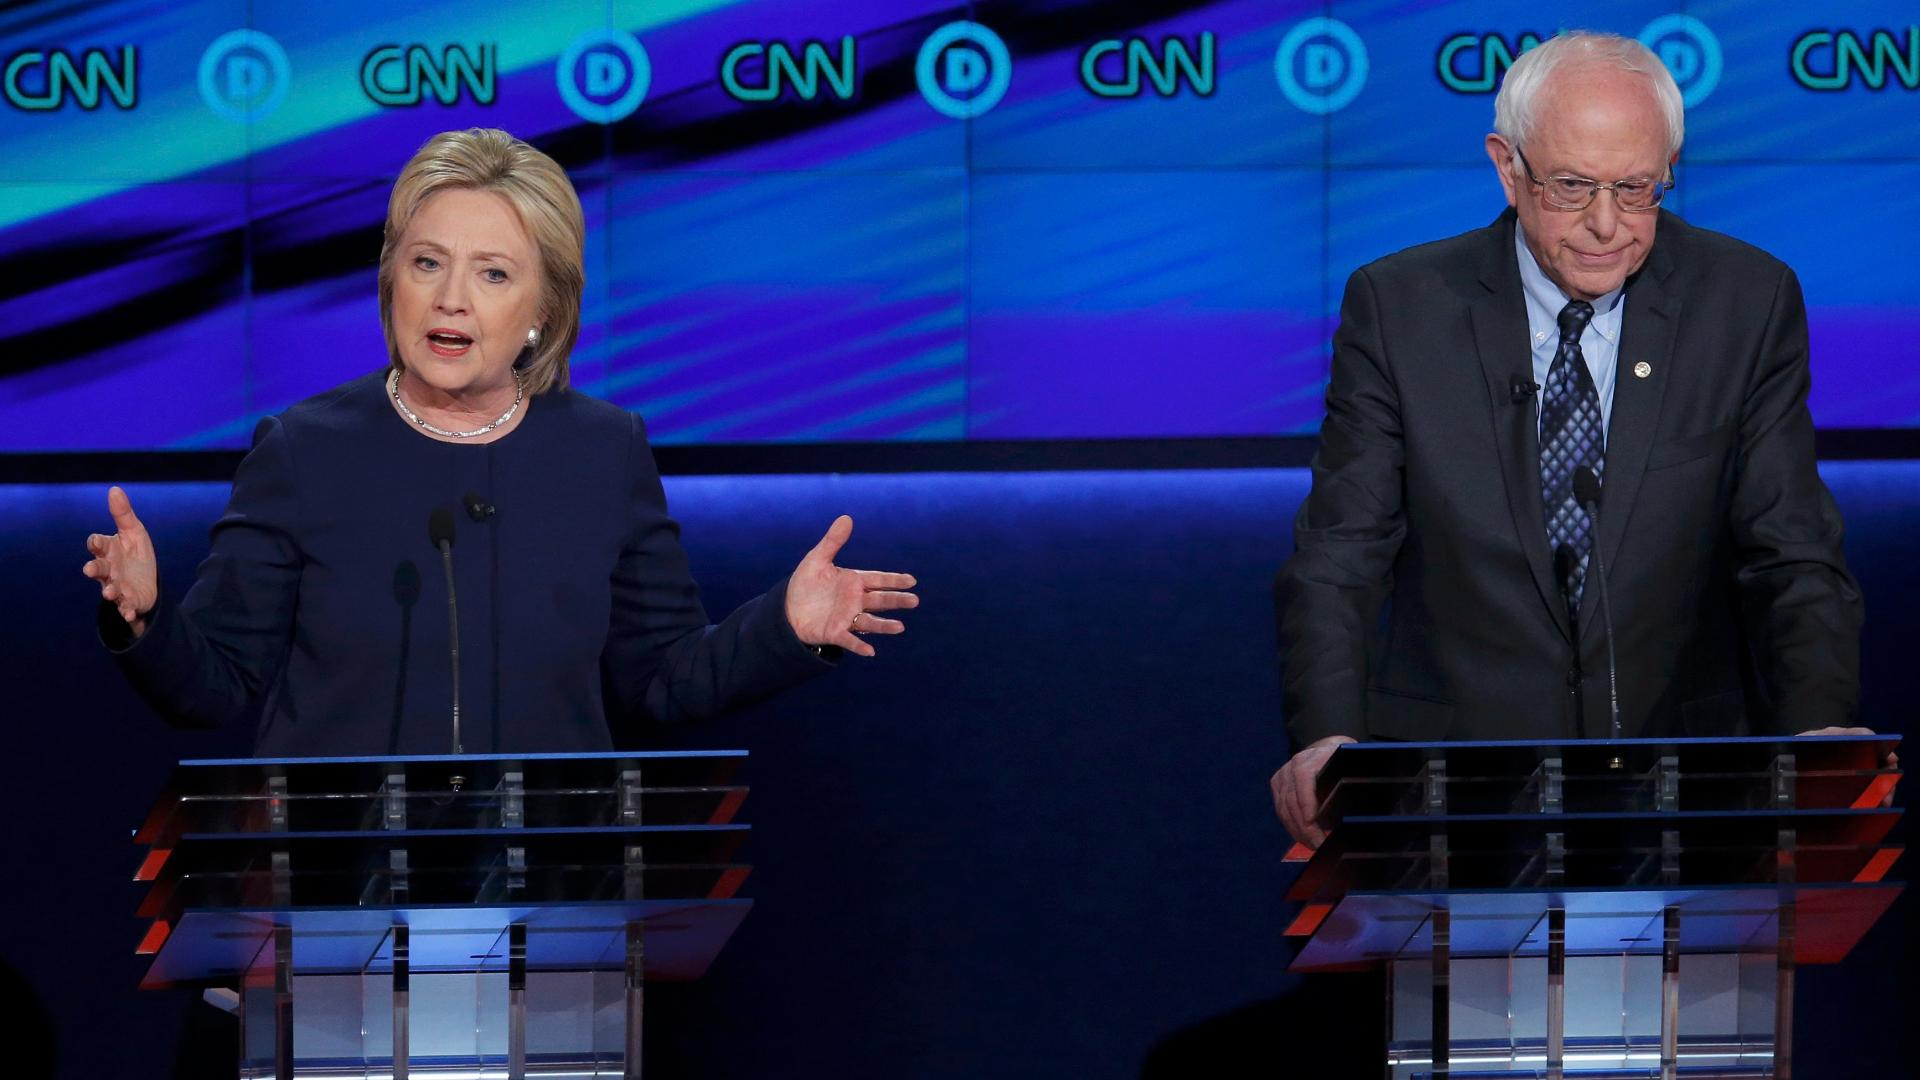 Winners and losers from the seventh Democratic presidential debate